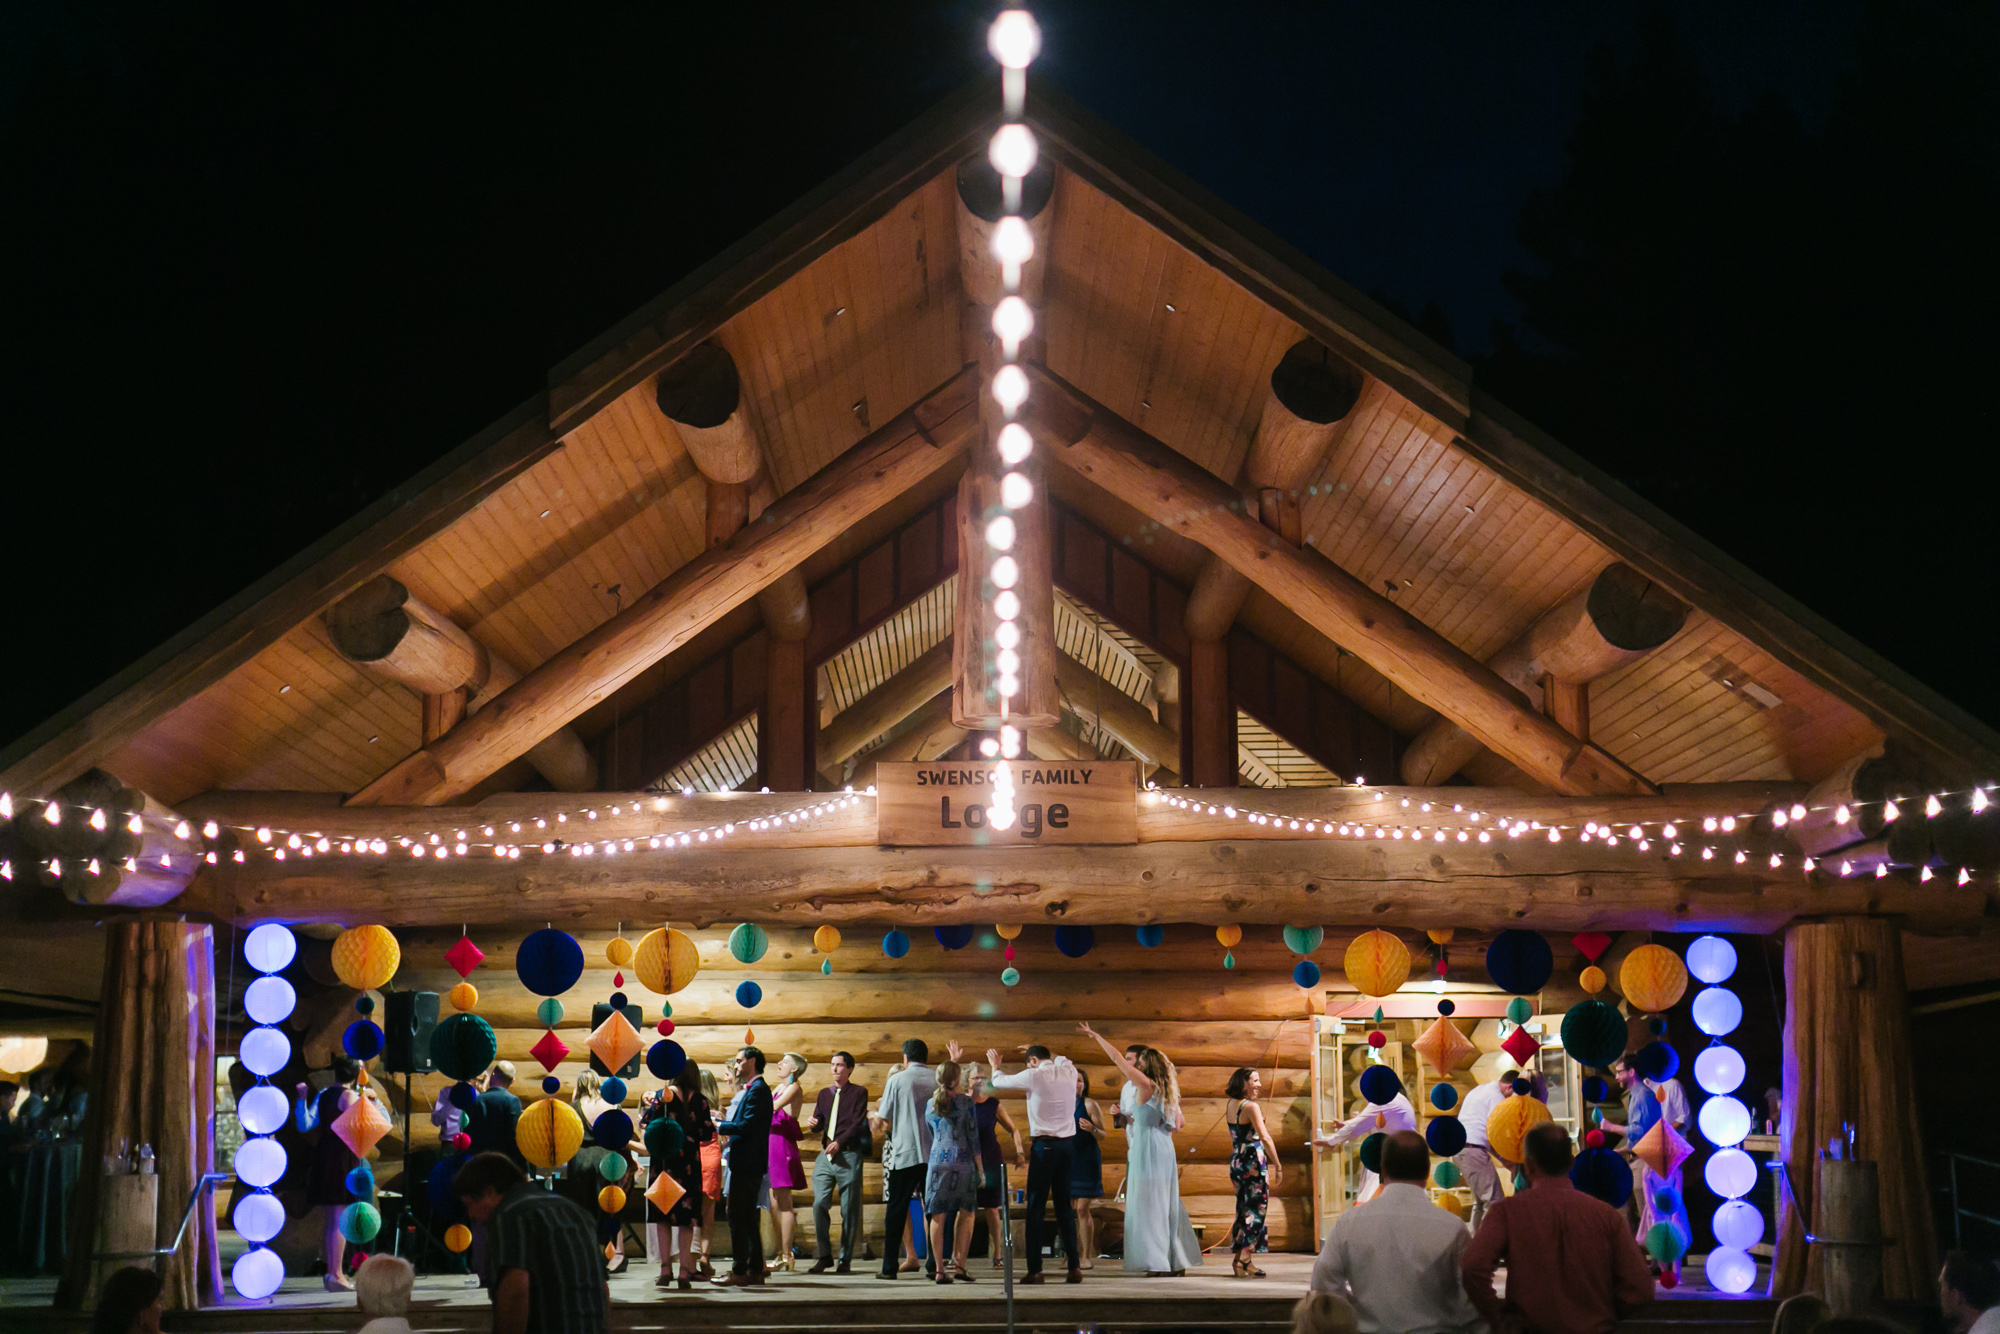 Night time scene of the log cabin lodge where the wedding dance party continues